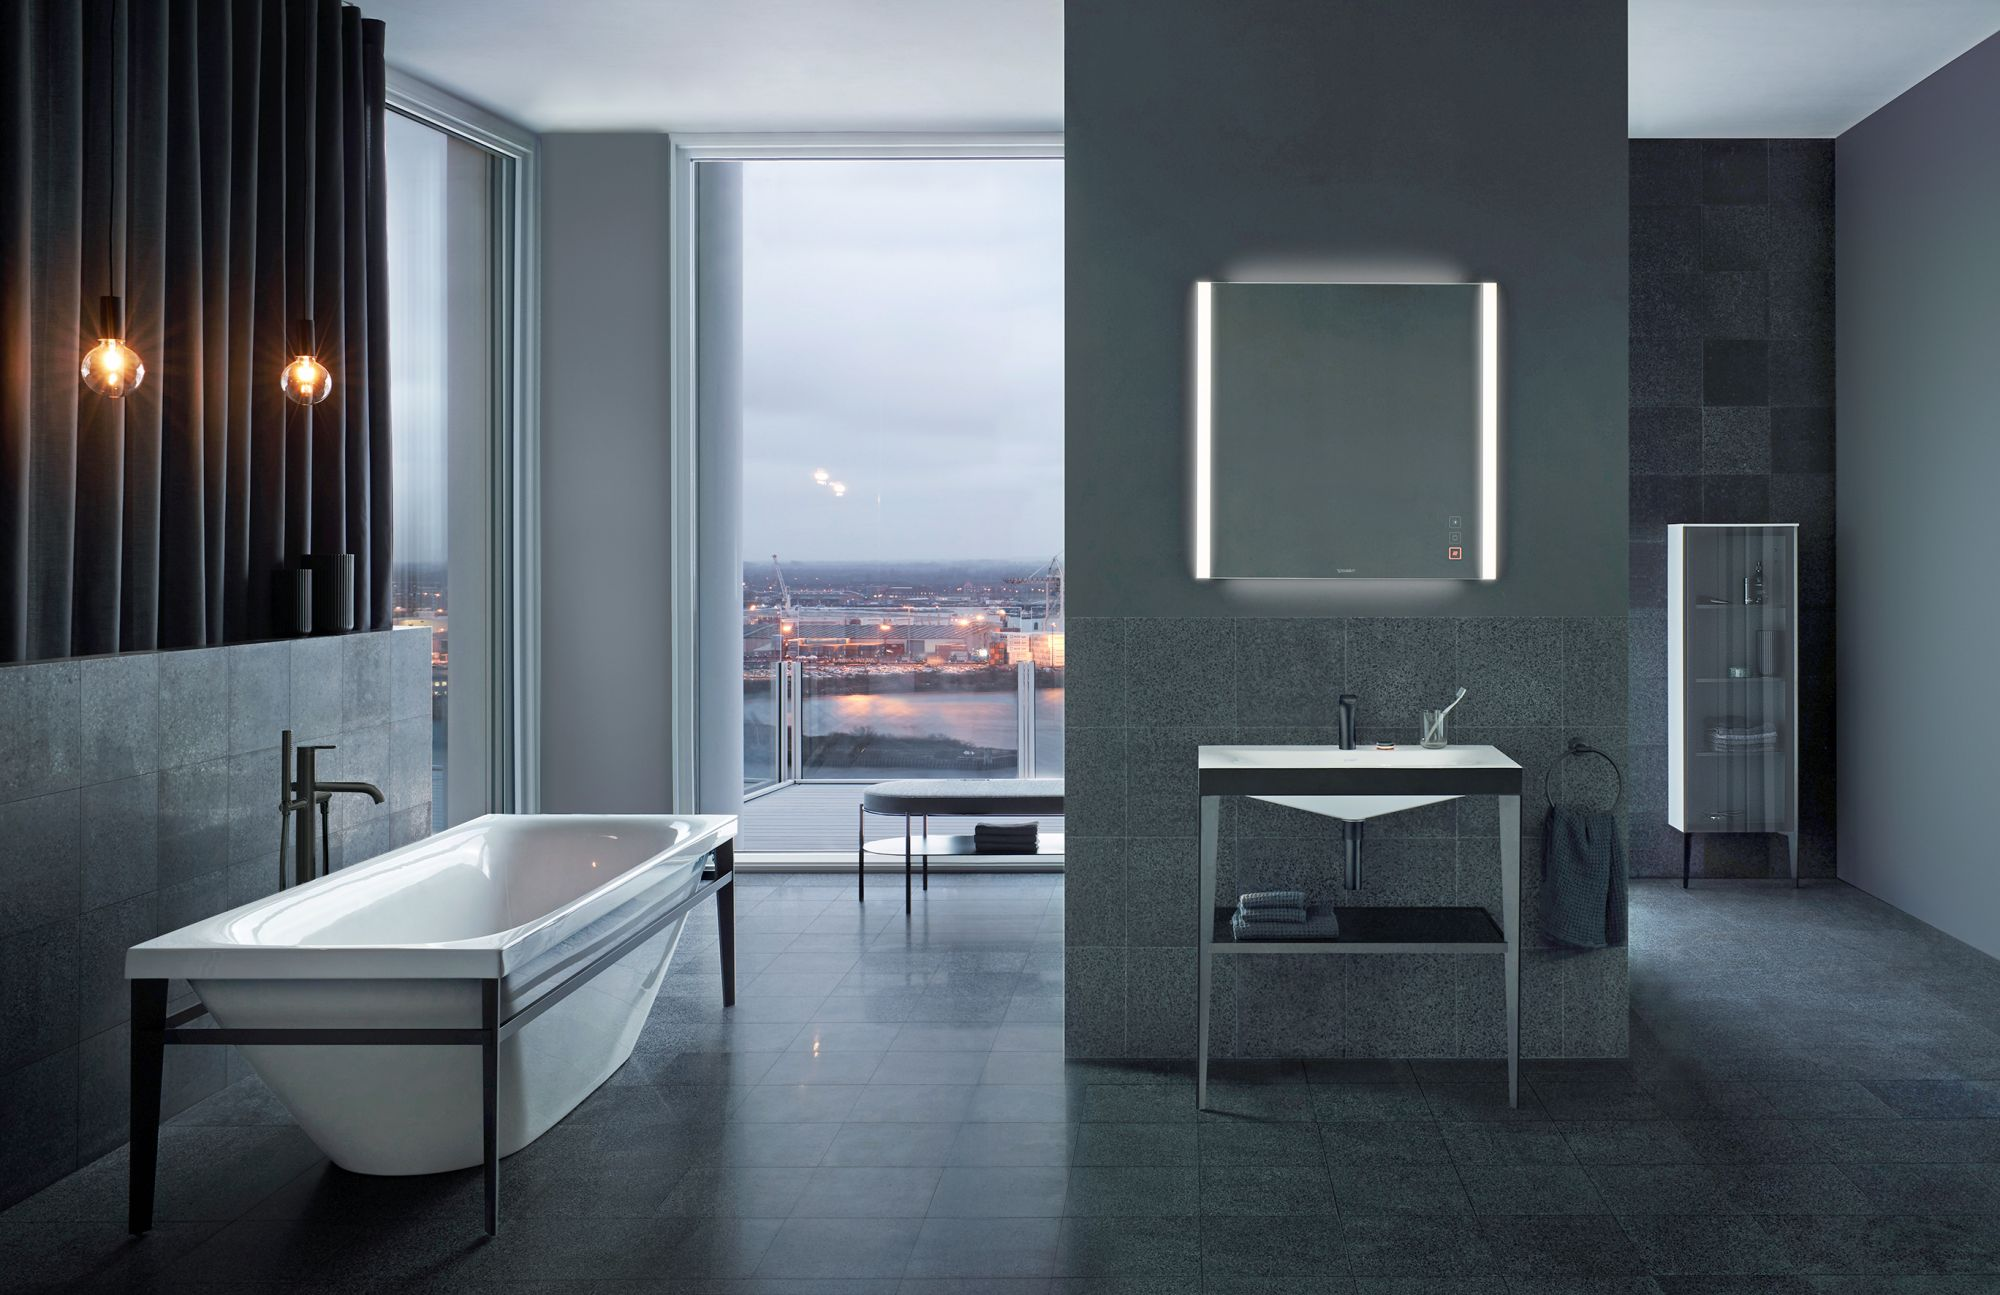 Duravit's Viu And XViu Ranges: Must-Haves For A Futuristic Bathroom